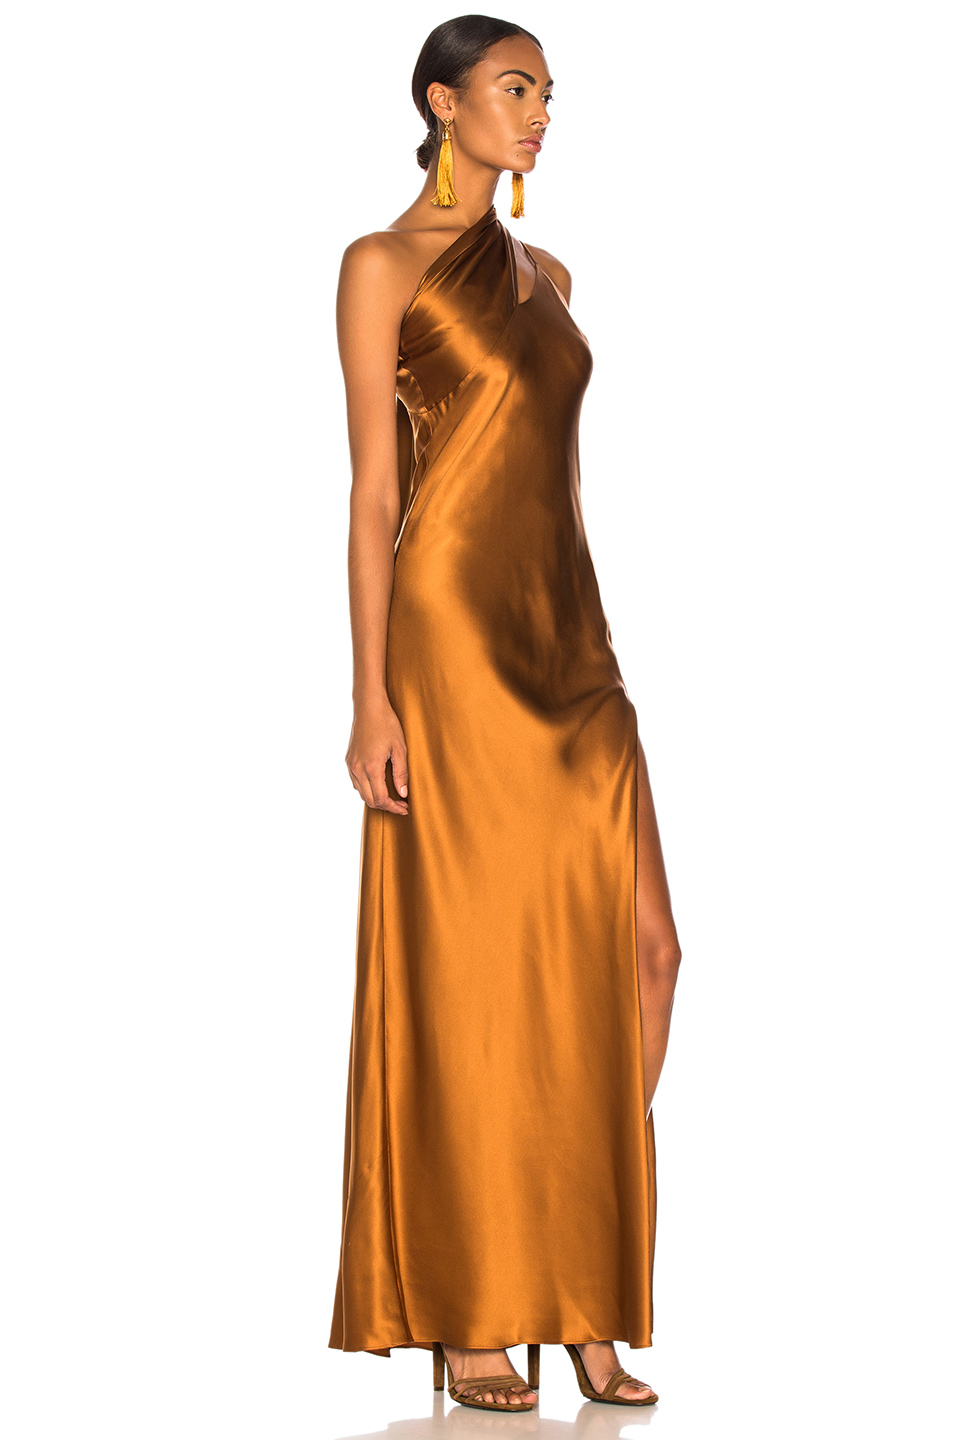 a5fcb1c97fd97 Buy Original Michelle Mason One Shoulder Gown With Tie at ...